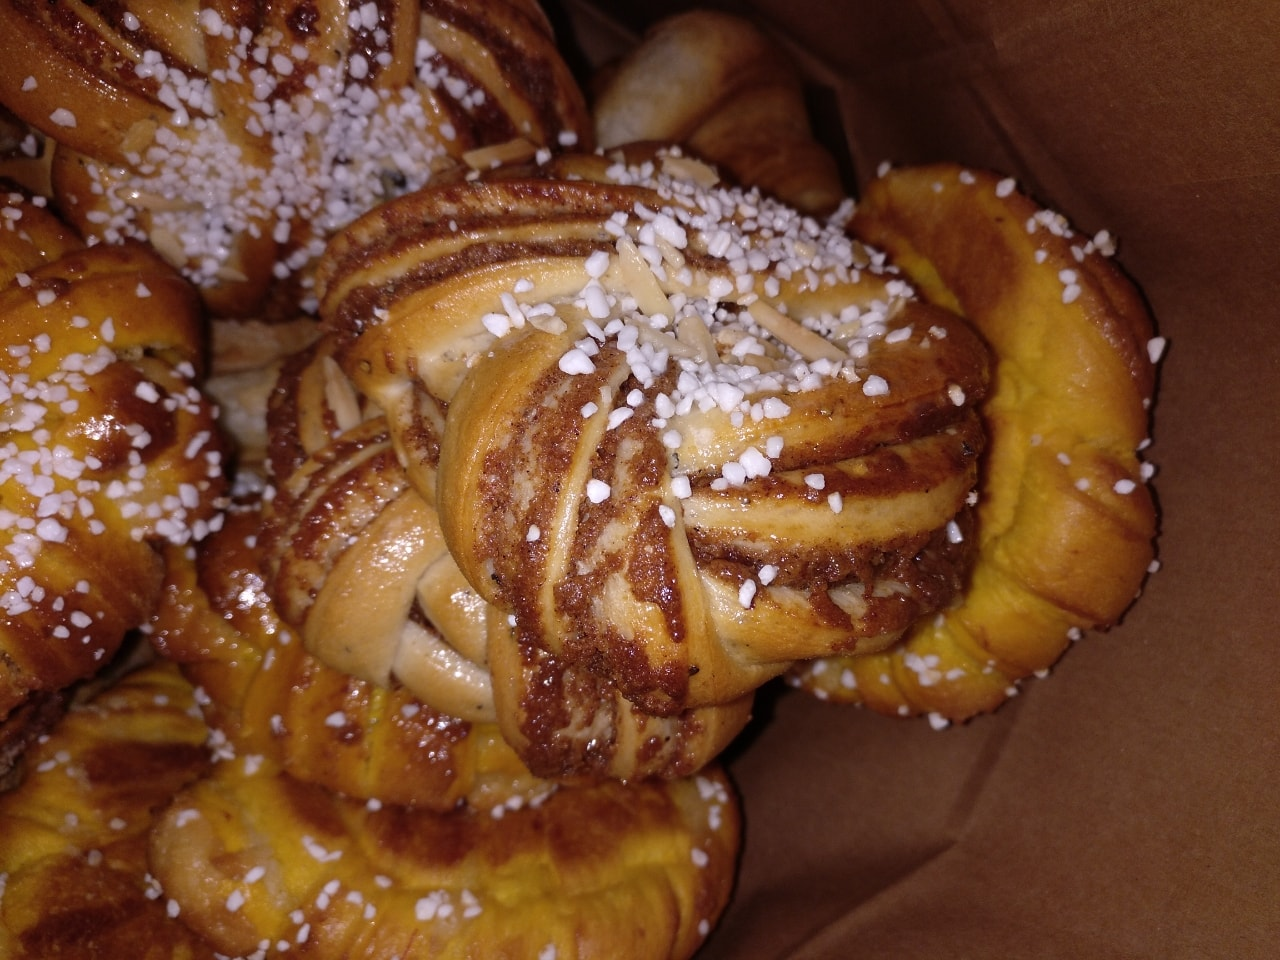 Cinnamon rolls from today 28/12